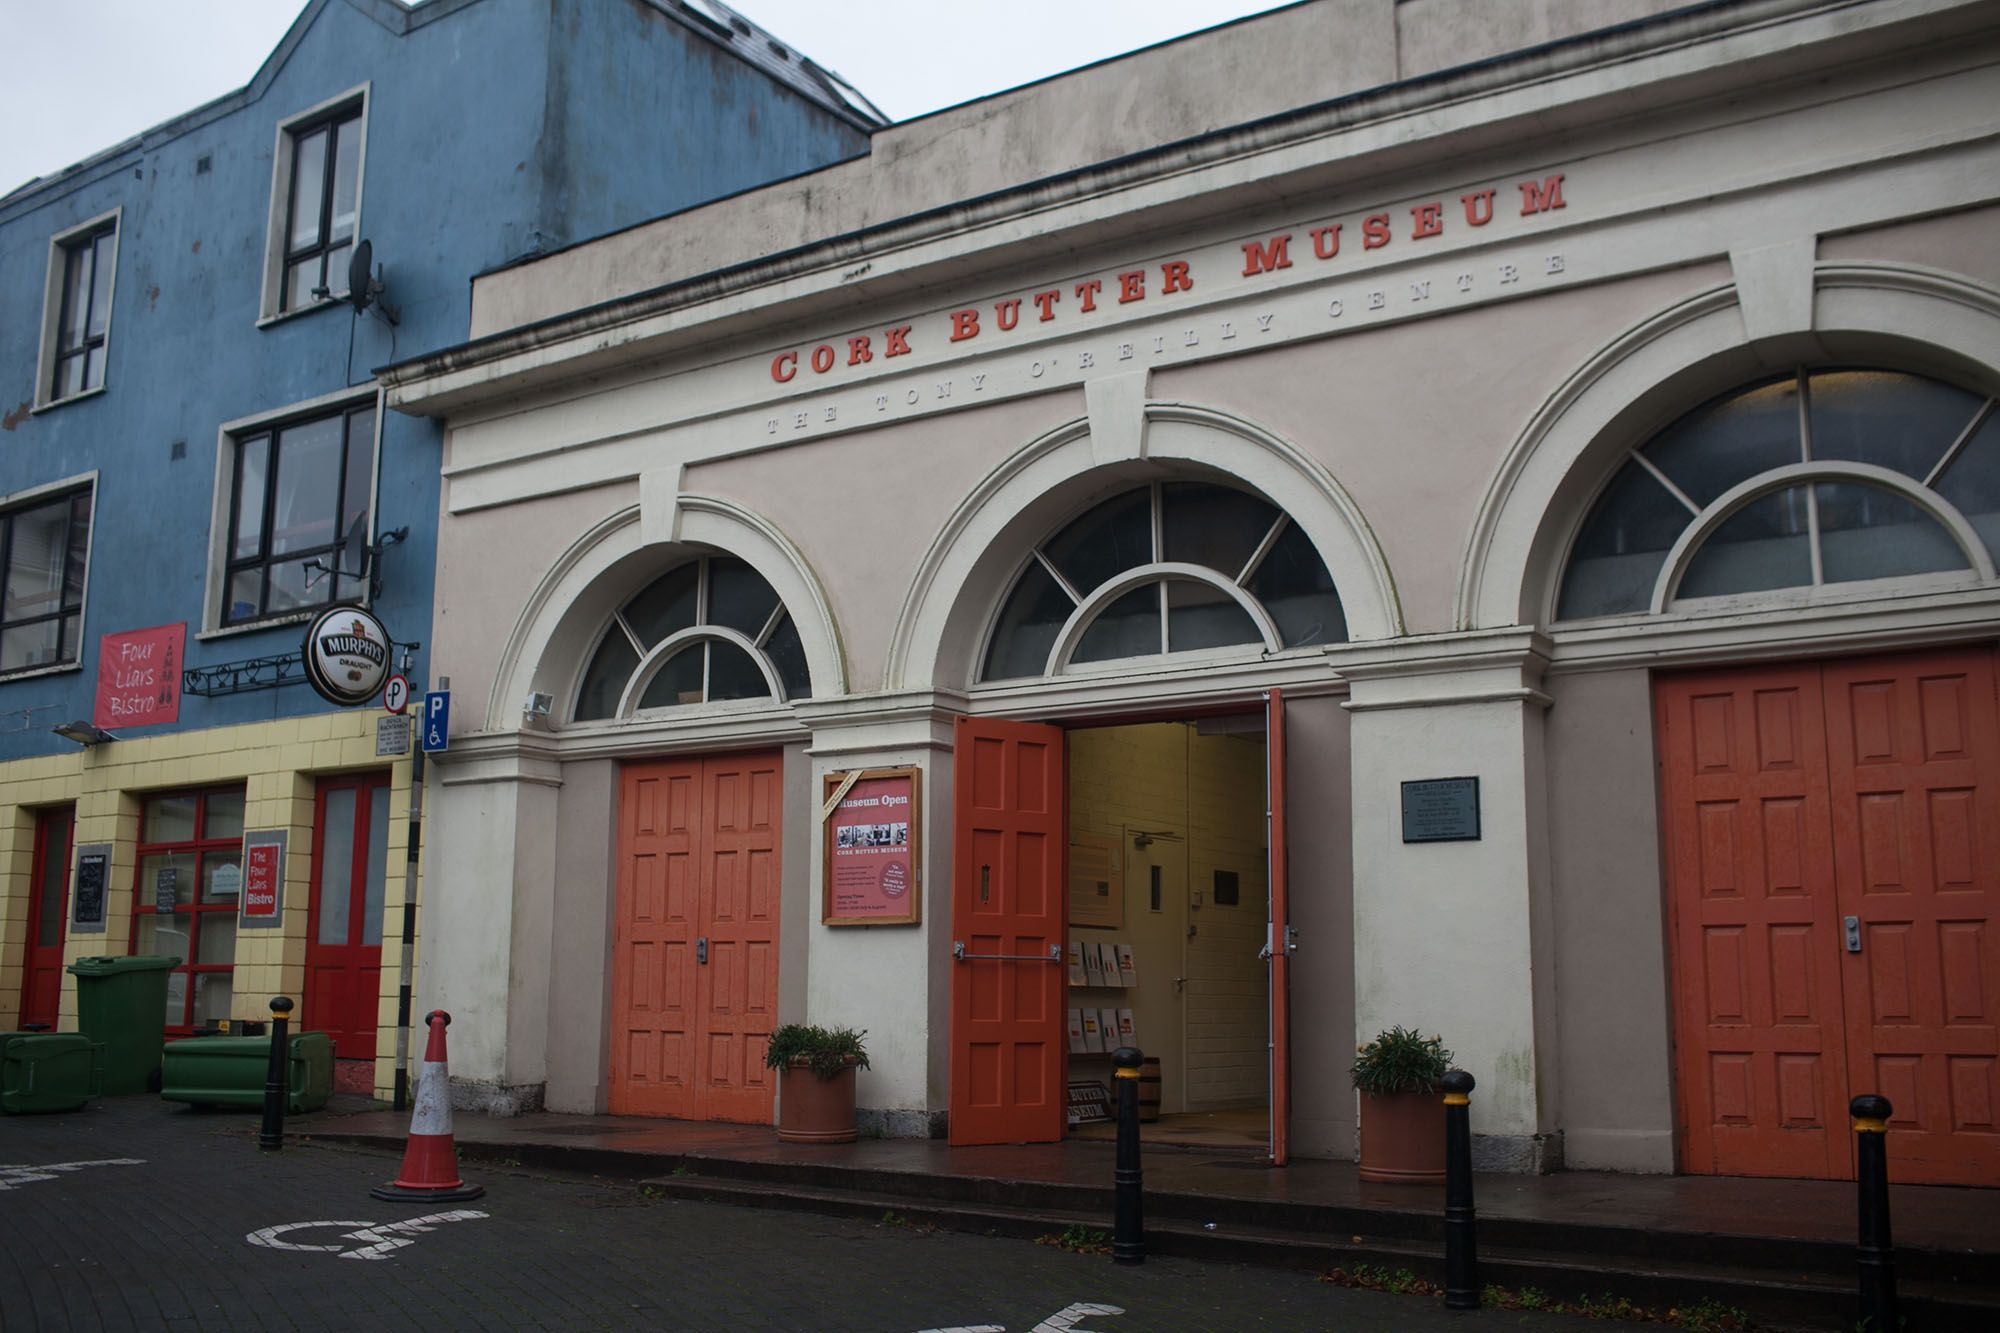 Cork Butter Museum in Cork, Ireland